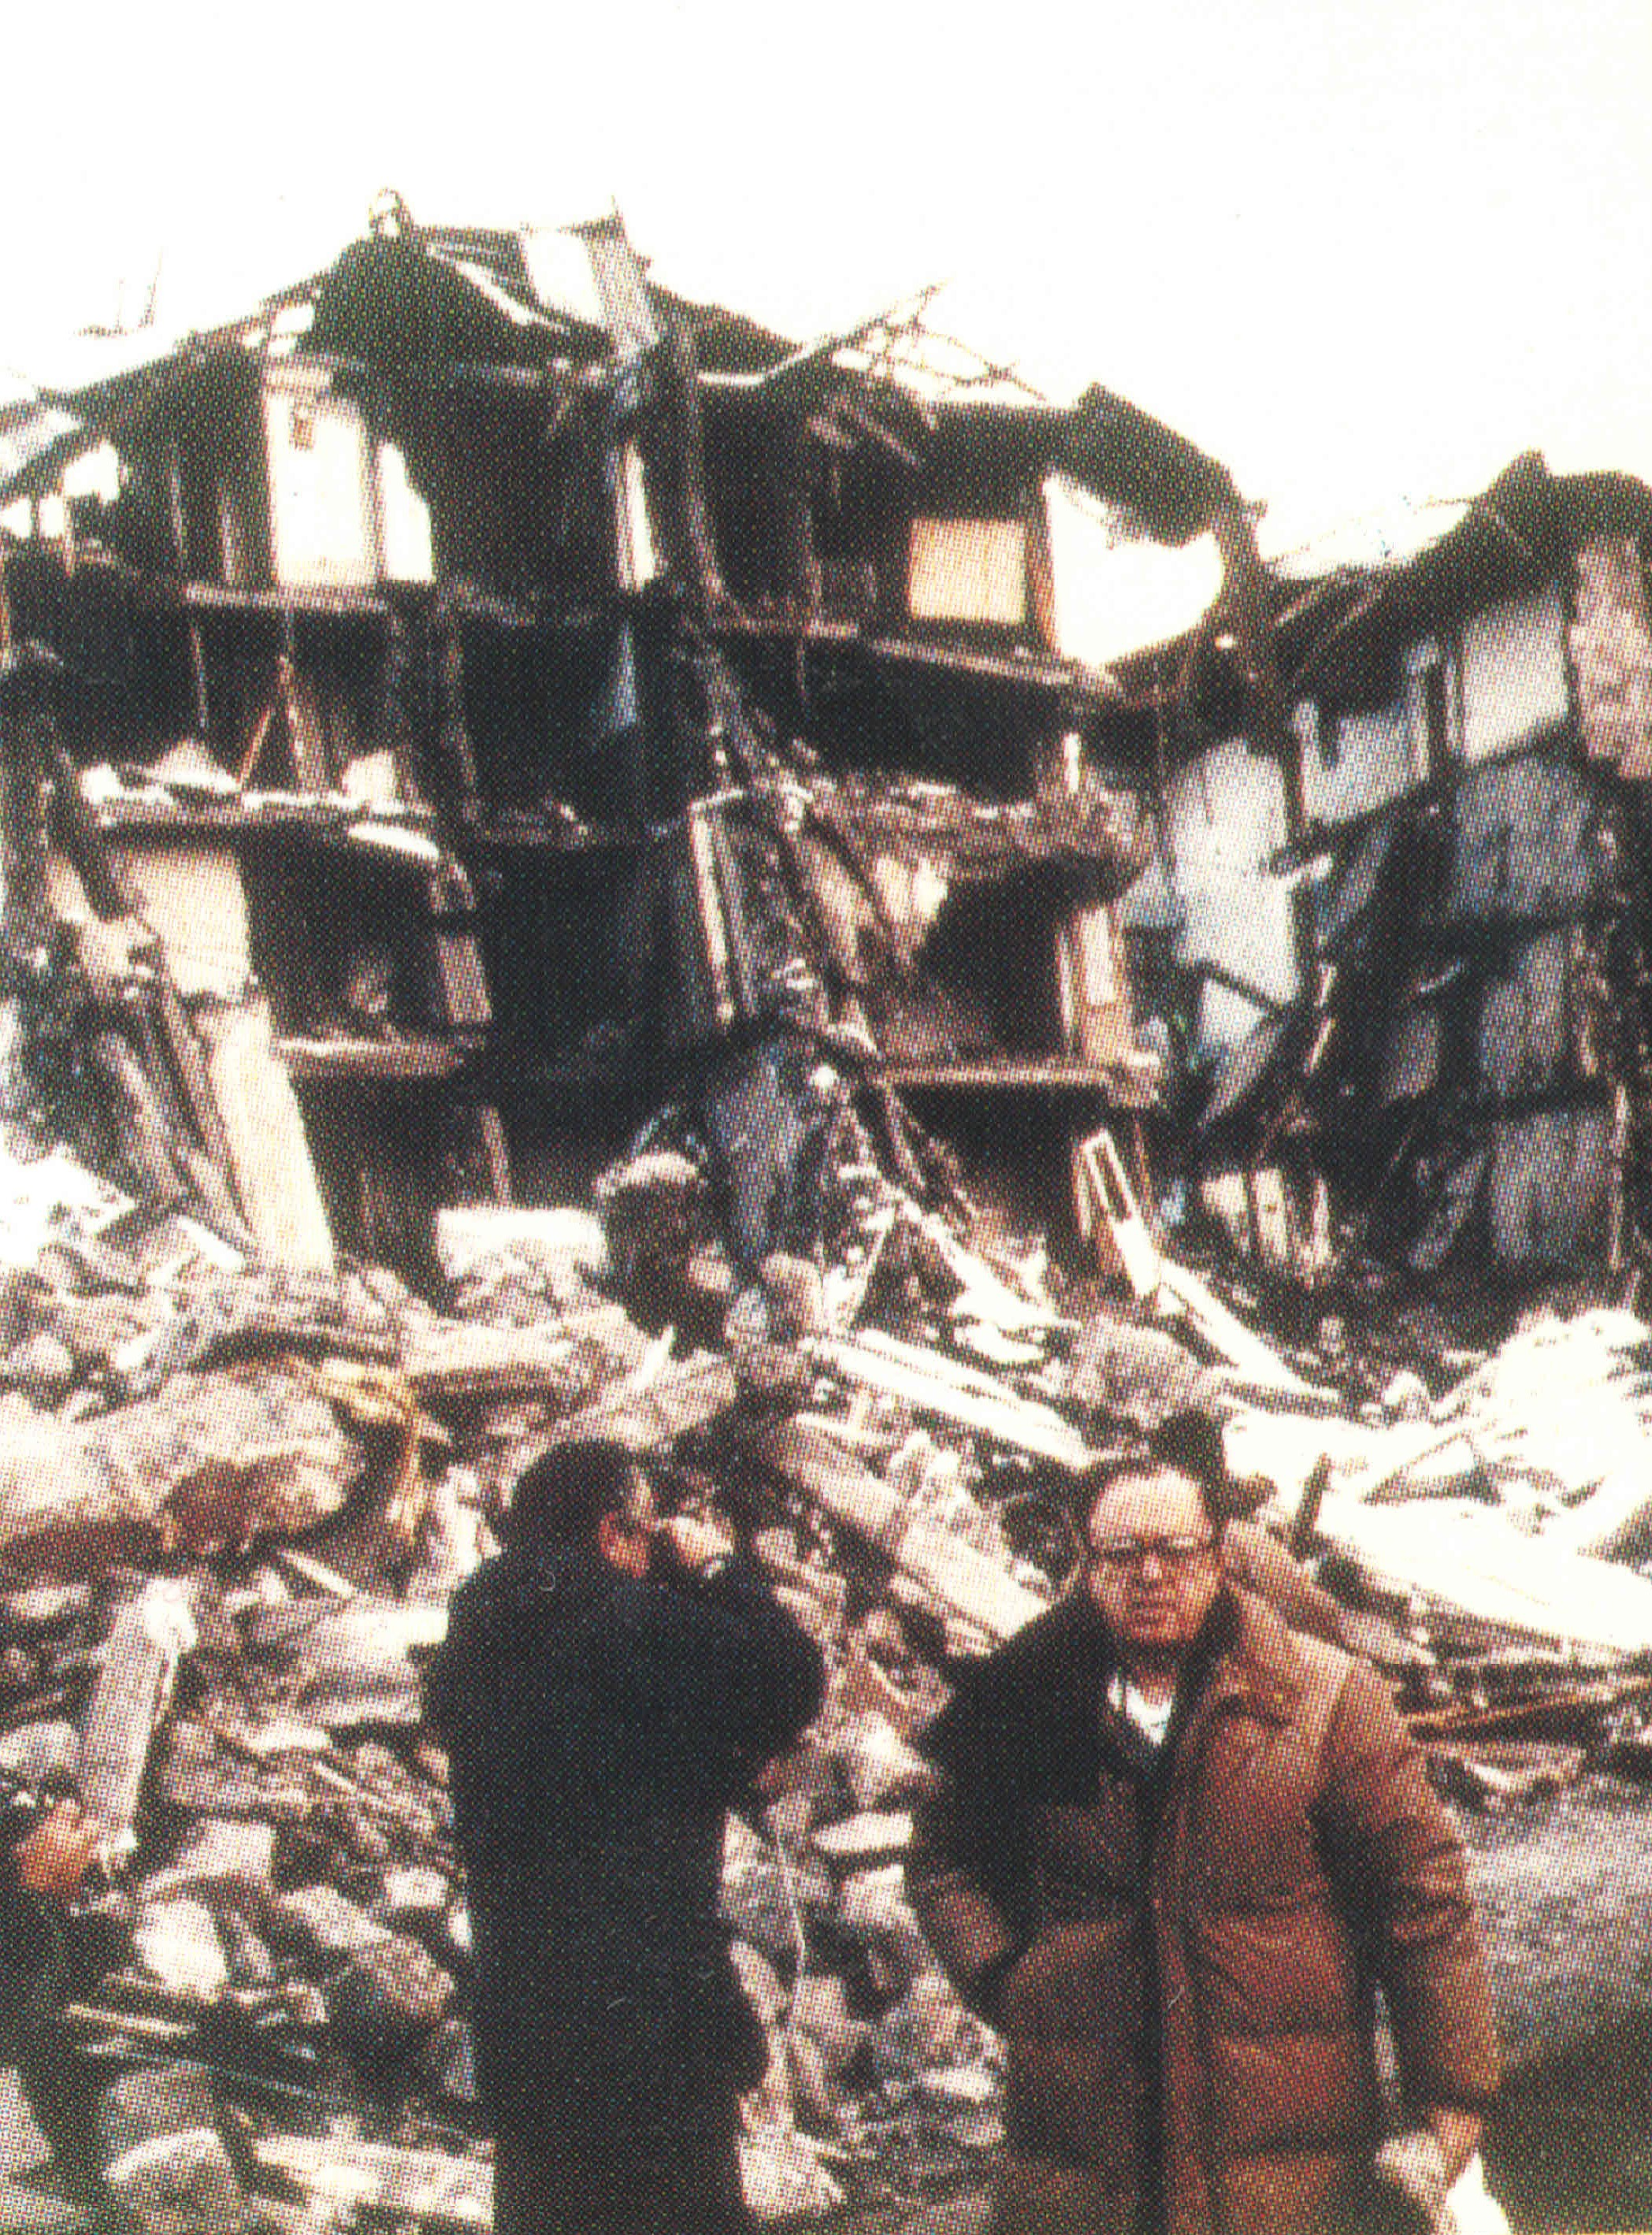 Dr. Mirhan Agbabian surveying the earthquake impact in 1989.